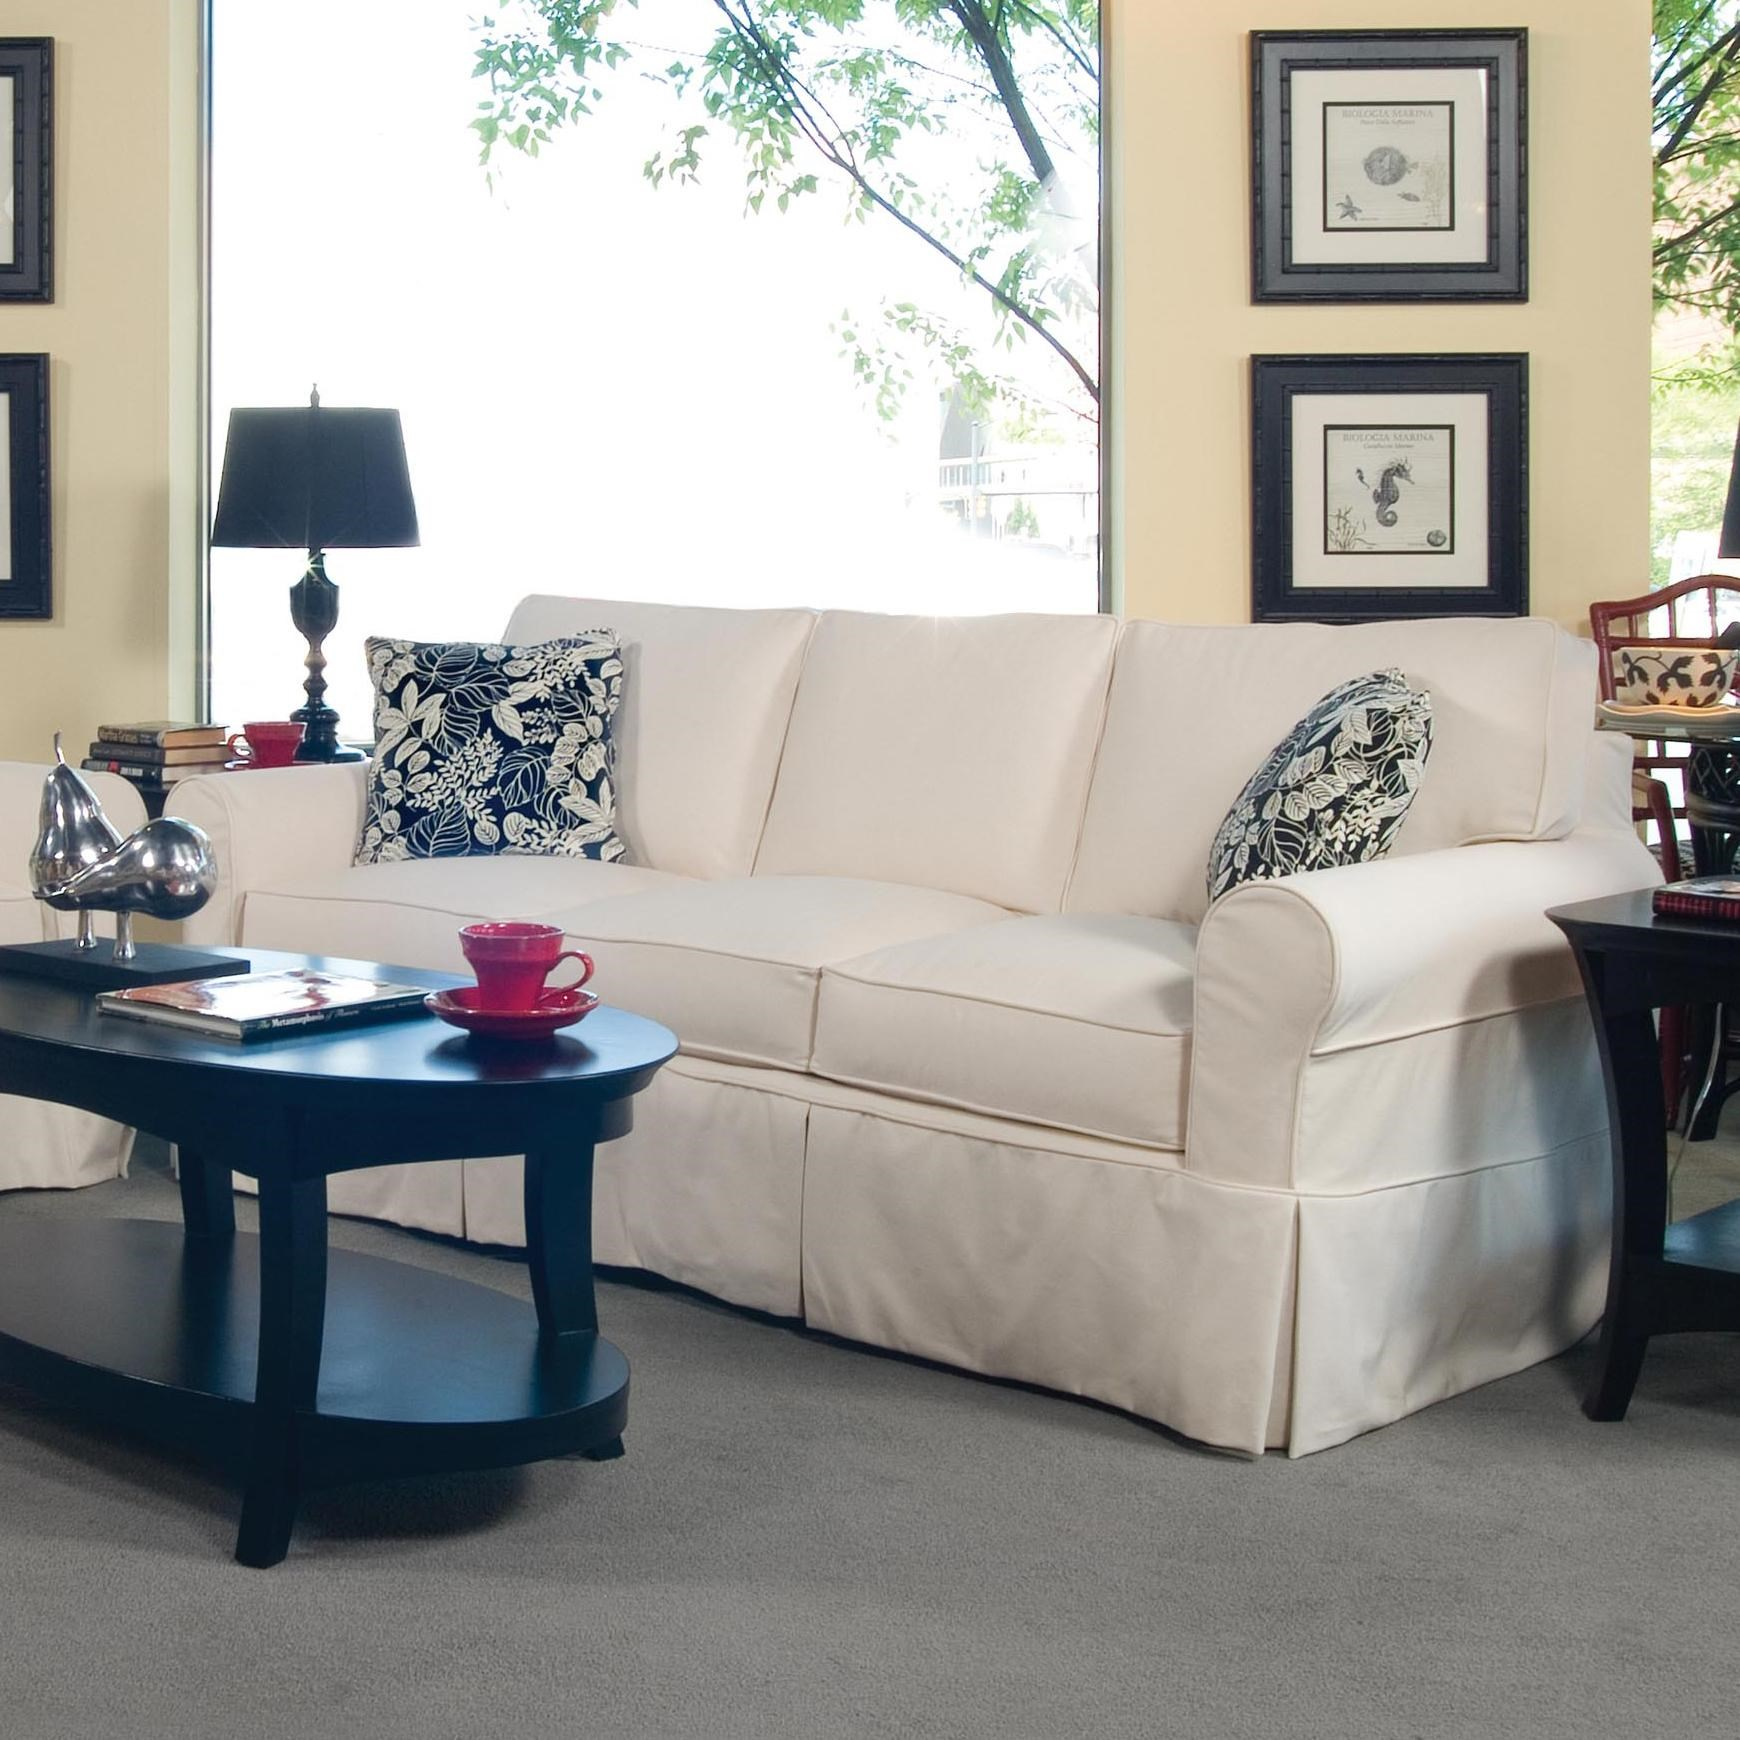 Braxton Culler 728 Casual Three Seater Sofa With Rolled Arms And Slipcover